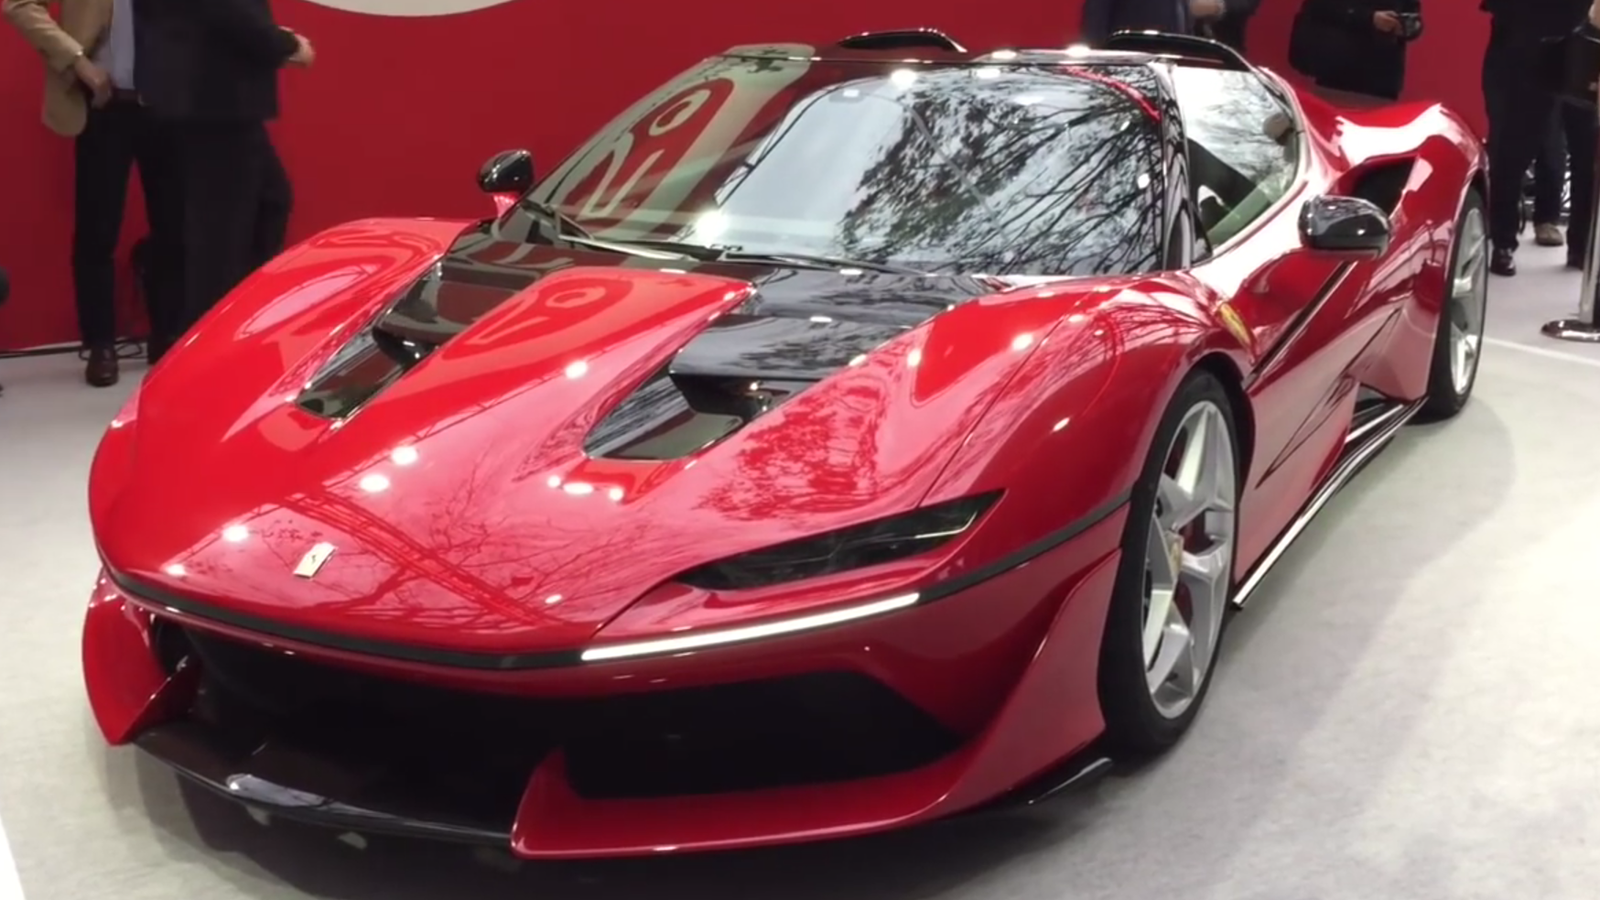 The Drop Dead Gorgeous Ferrari J50 Is The 488 The World